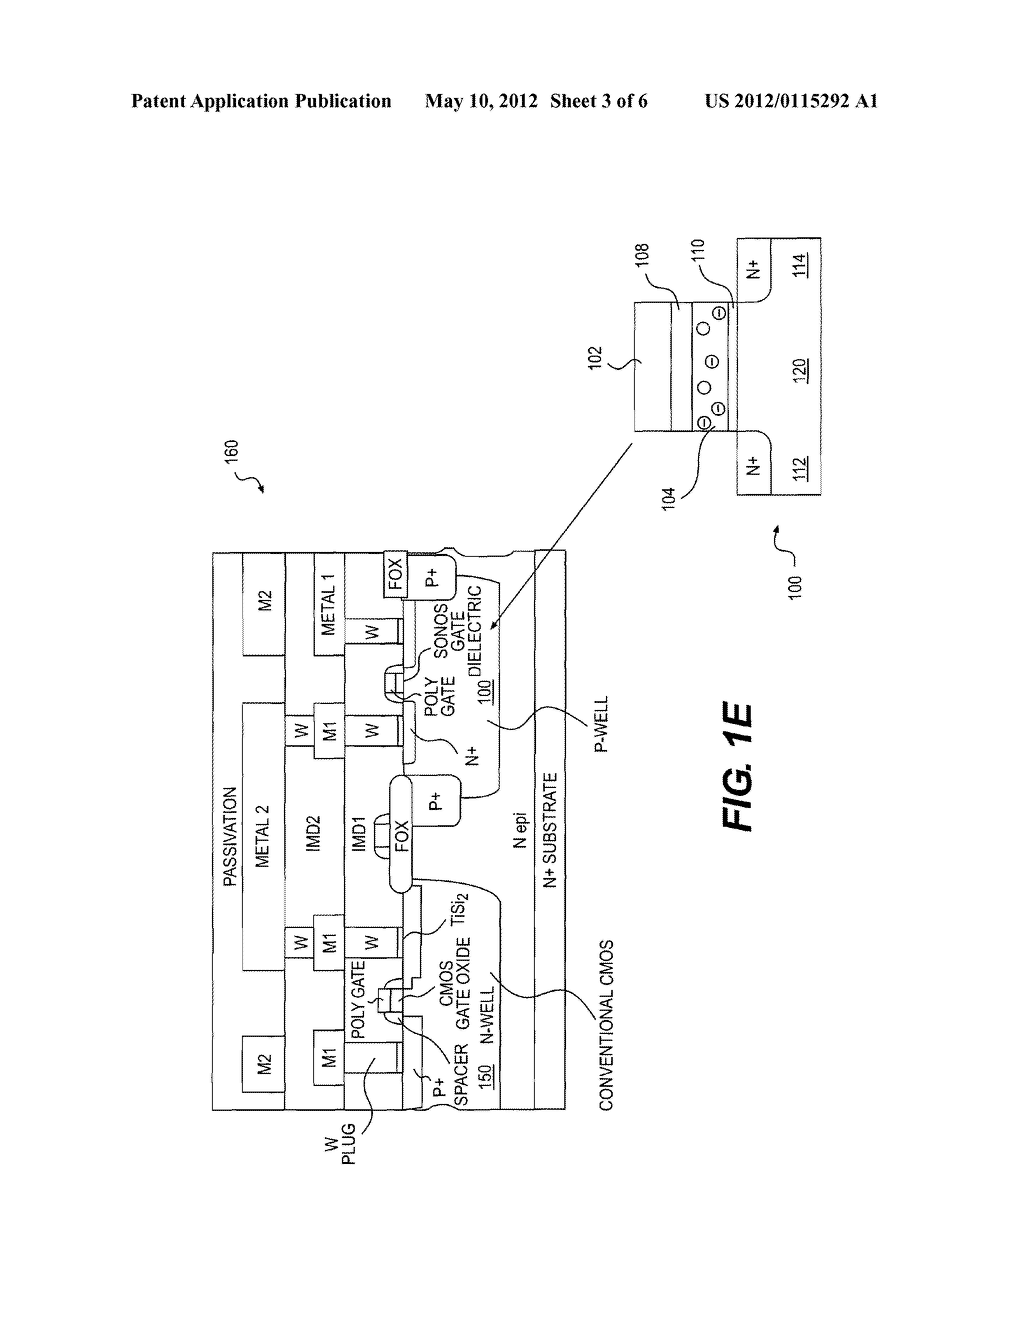 hight resolution of method for integrating sonos non volatile memory into a standard cmos foundry process flow diagram schematic and image 04